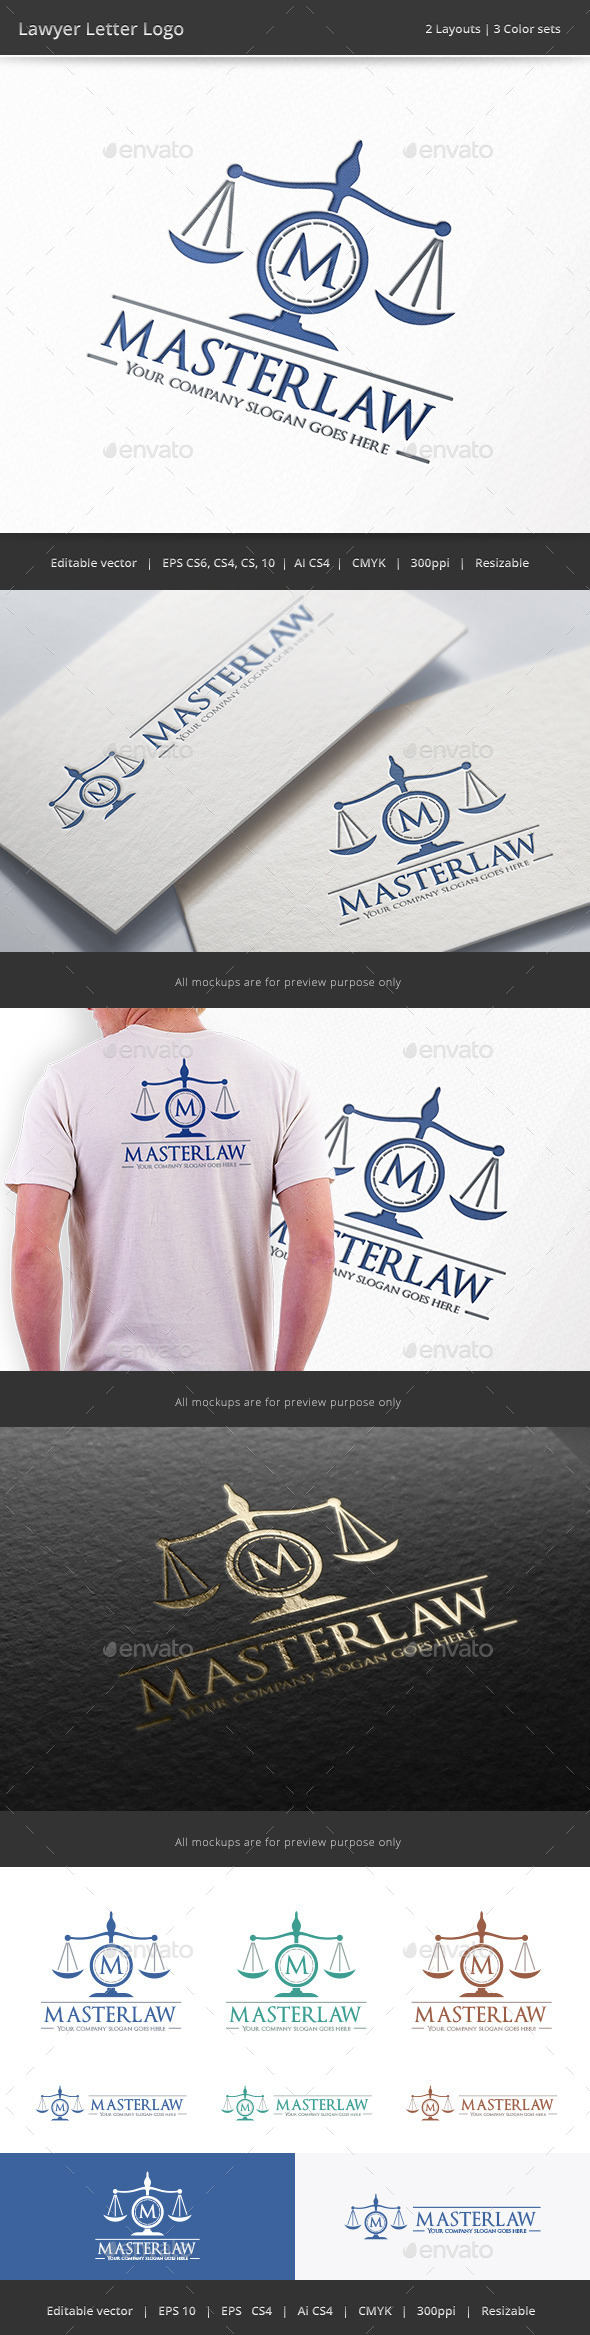 GraphicRiver Lawyer Letter Logo 9960281